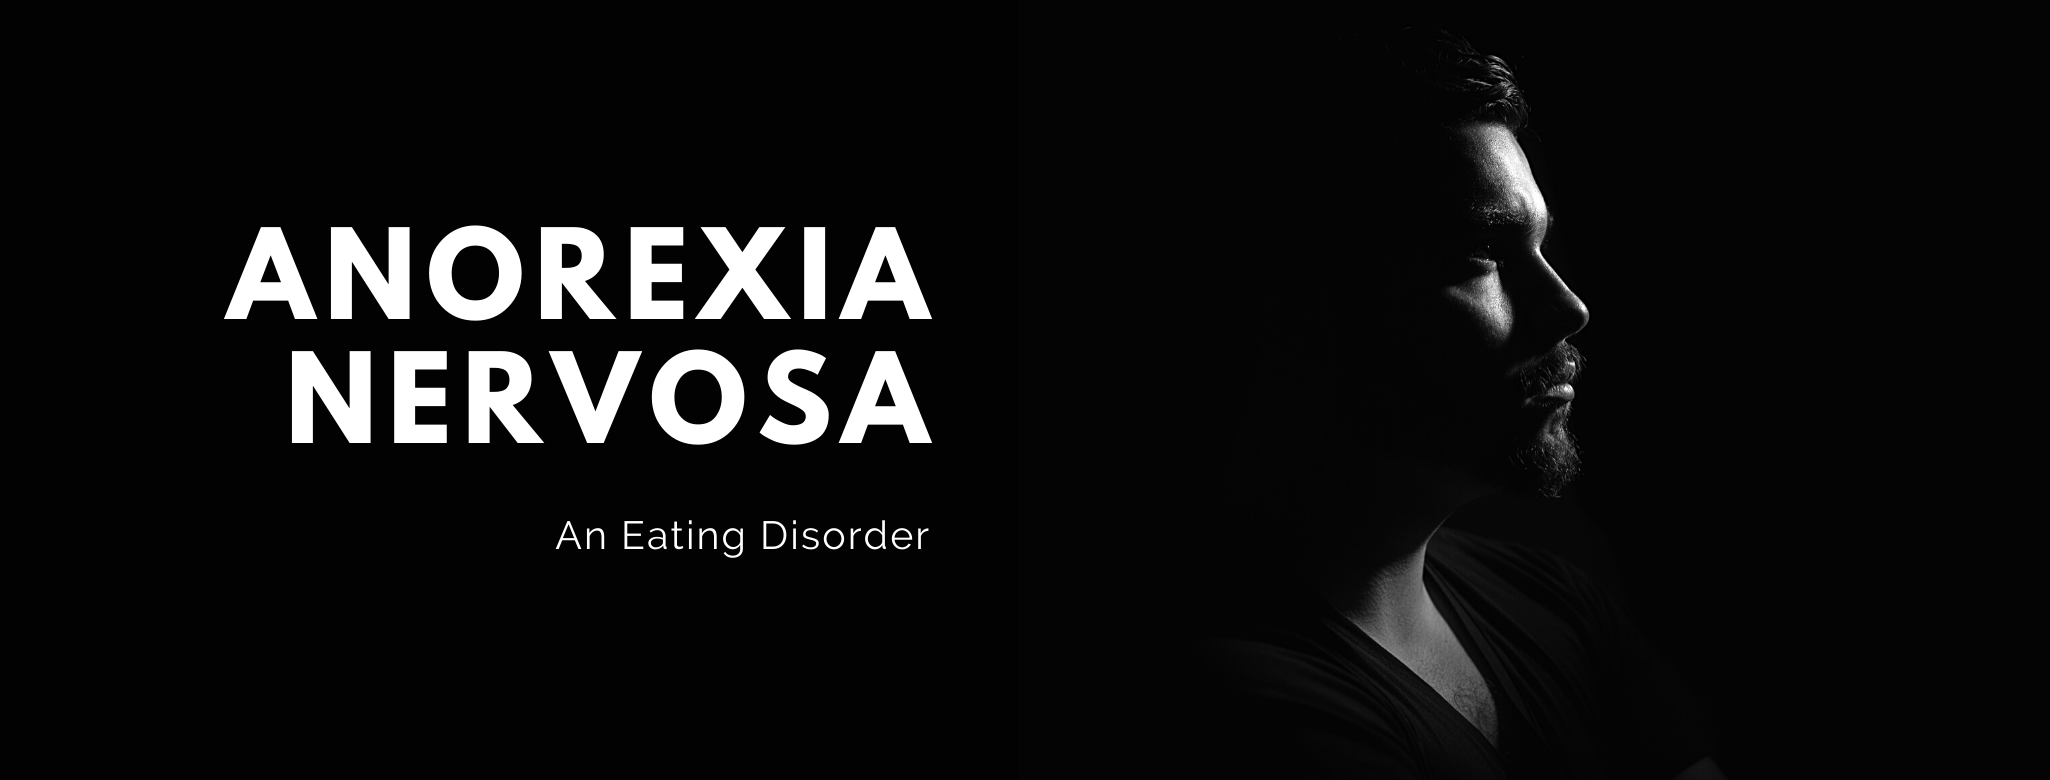 anorexia nervosa - eating disorder - mht india